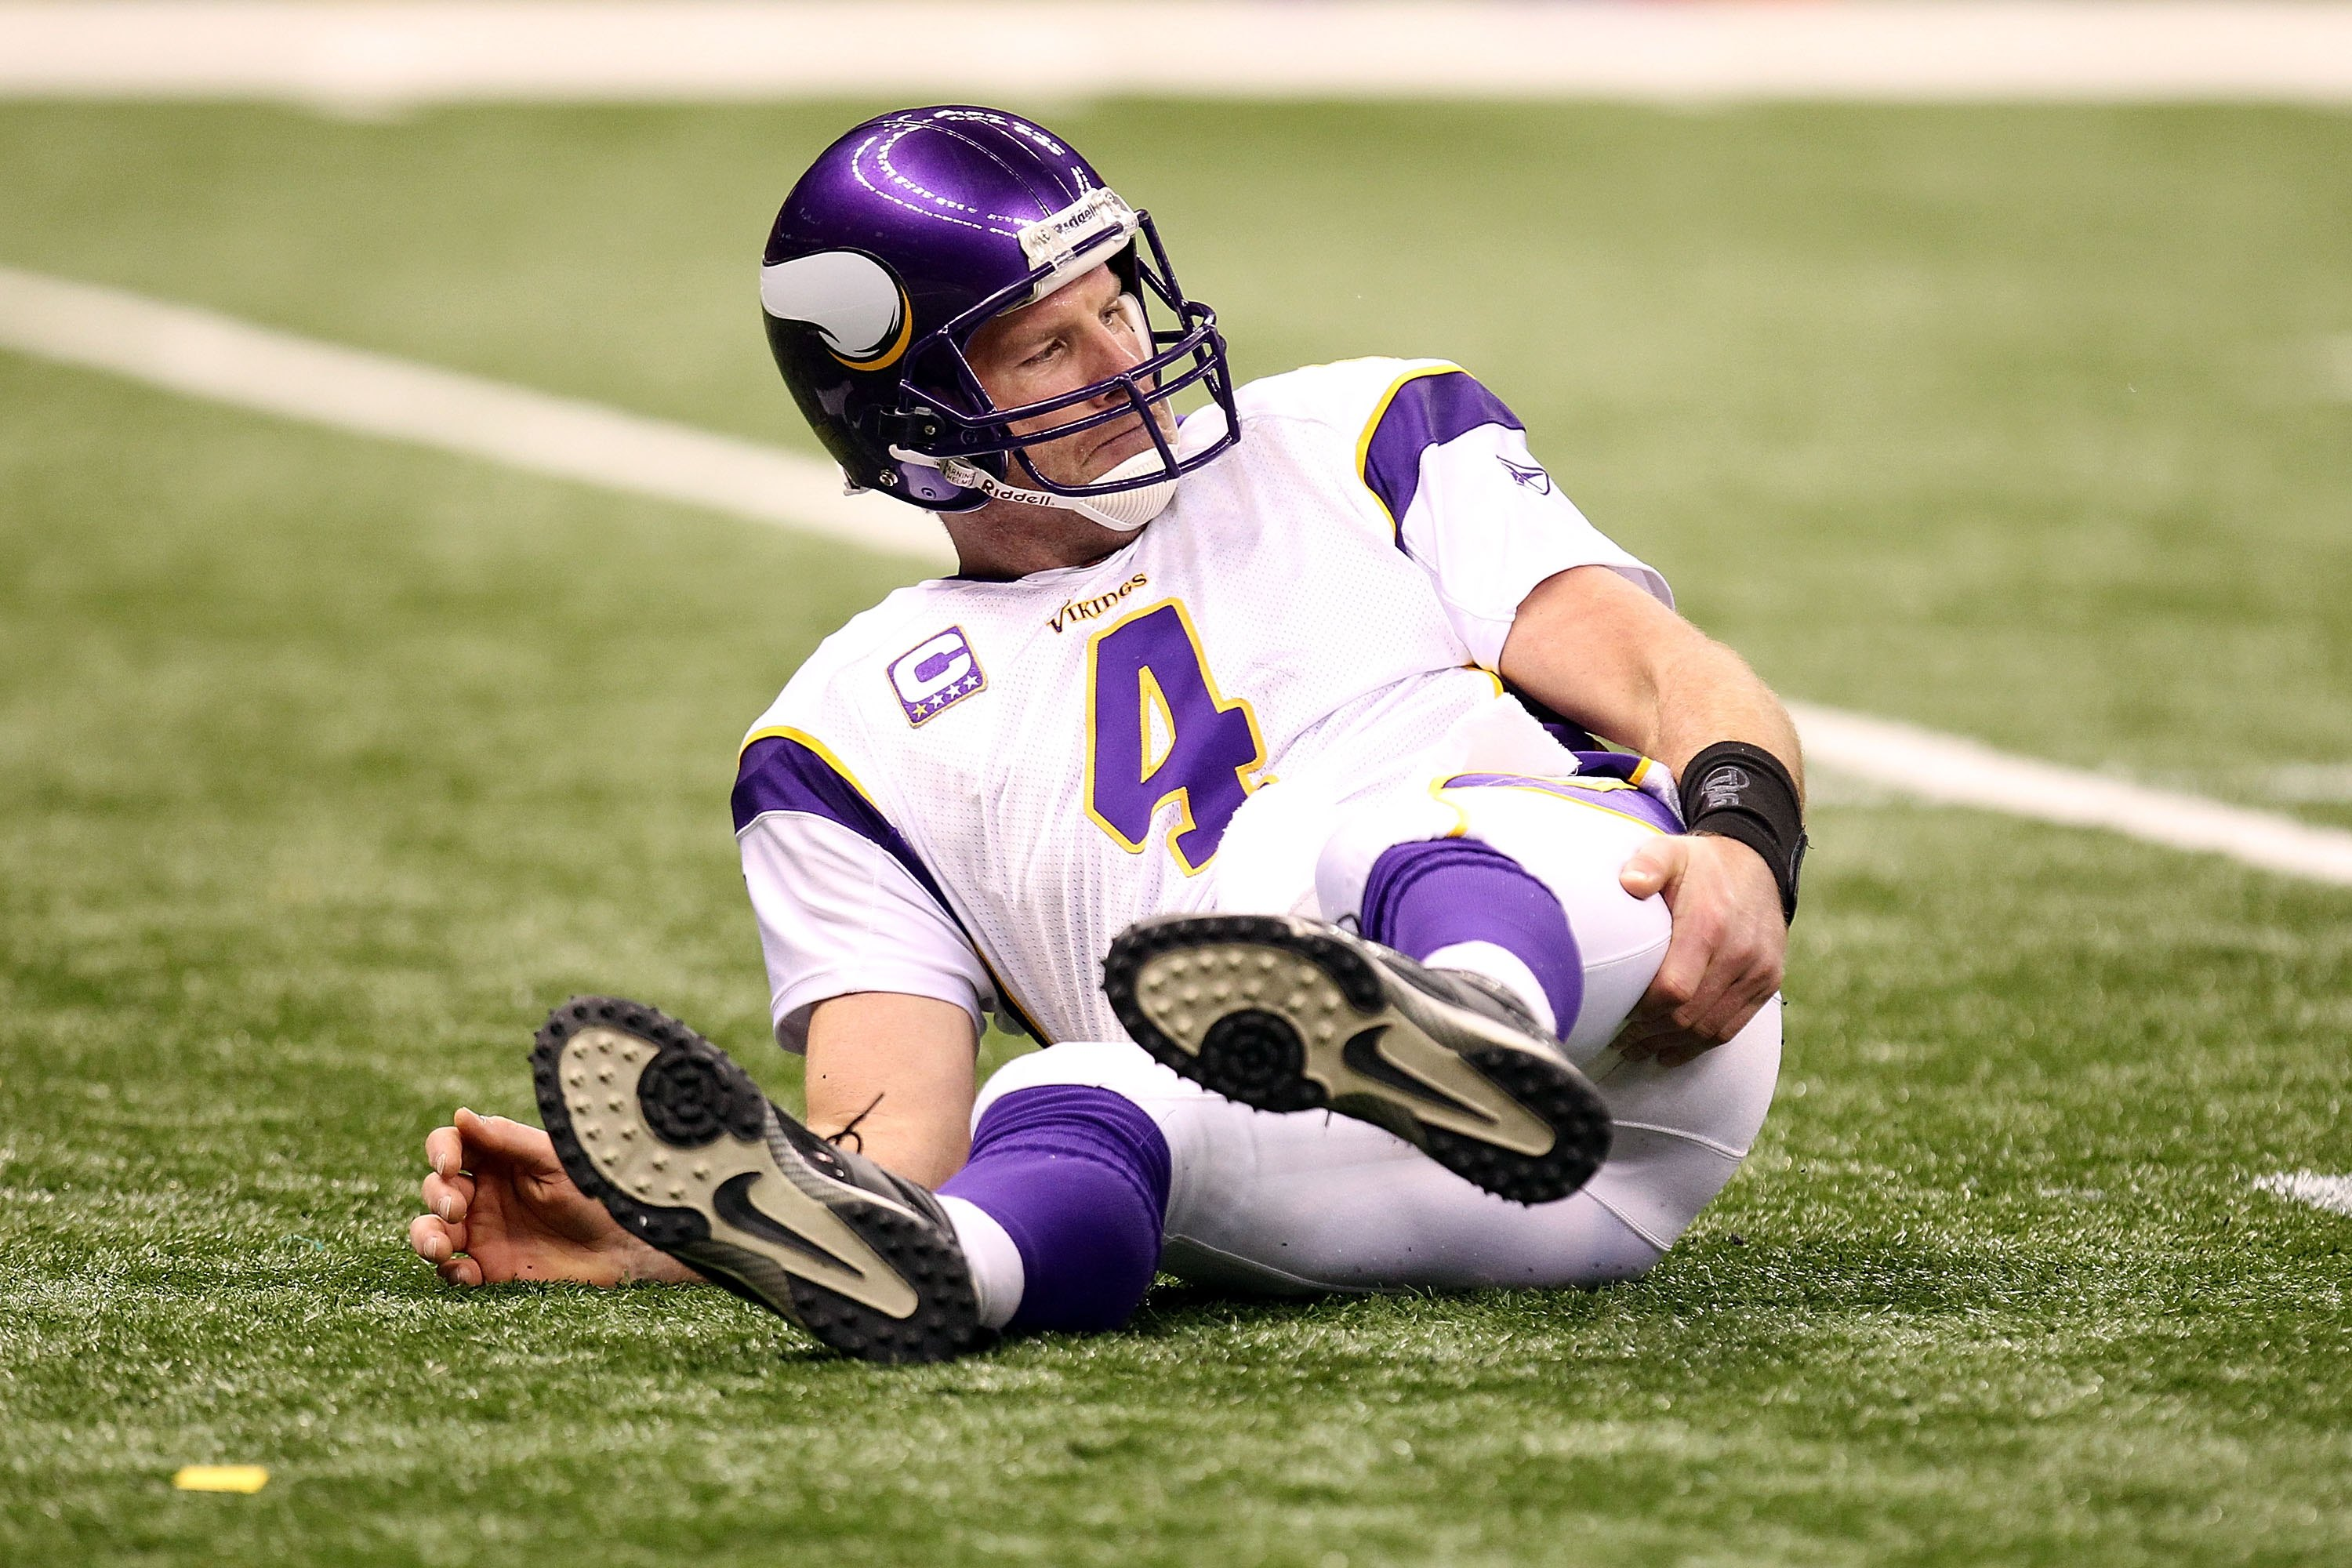 NEW ORLEANS - JANUARY 24:  Brett Favre #4 of the Minnesota Vikings grabs the back of his right leg as he sits on the turf after getting knocked down on a play against the New Orleans Saints during the NFC Championship Game at the Louisiana Superdome on Ja